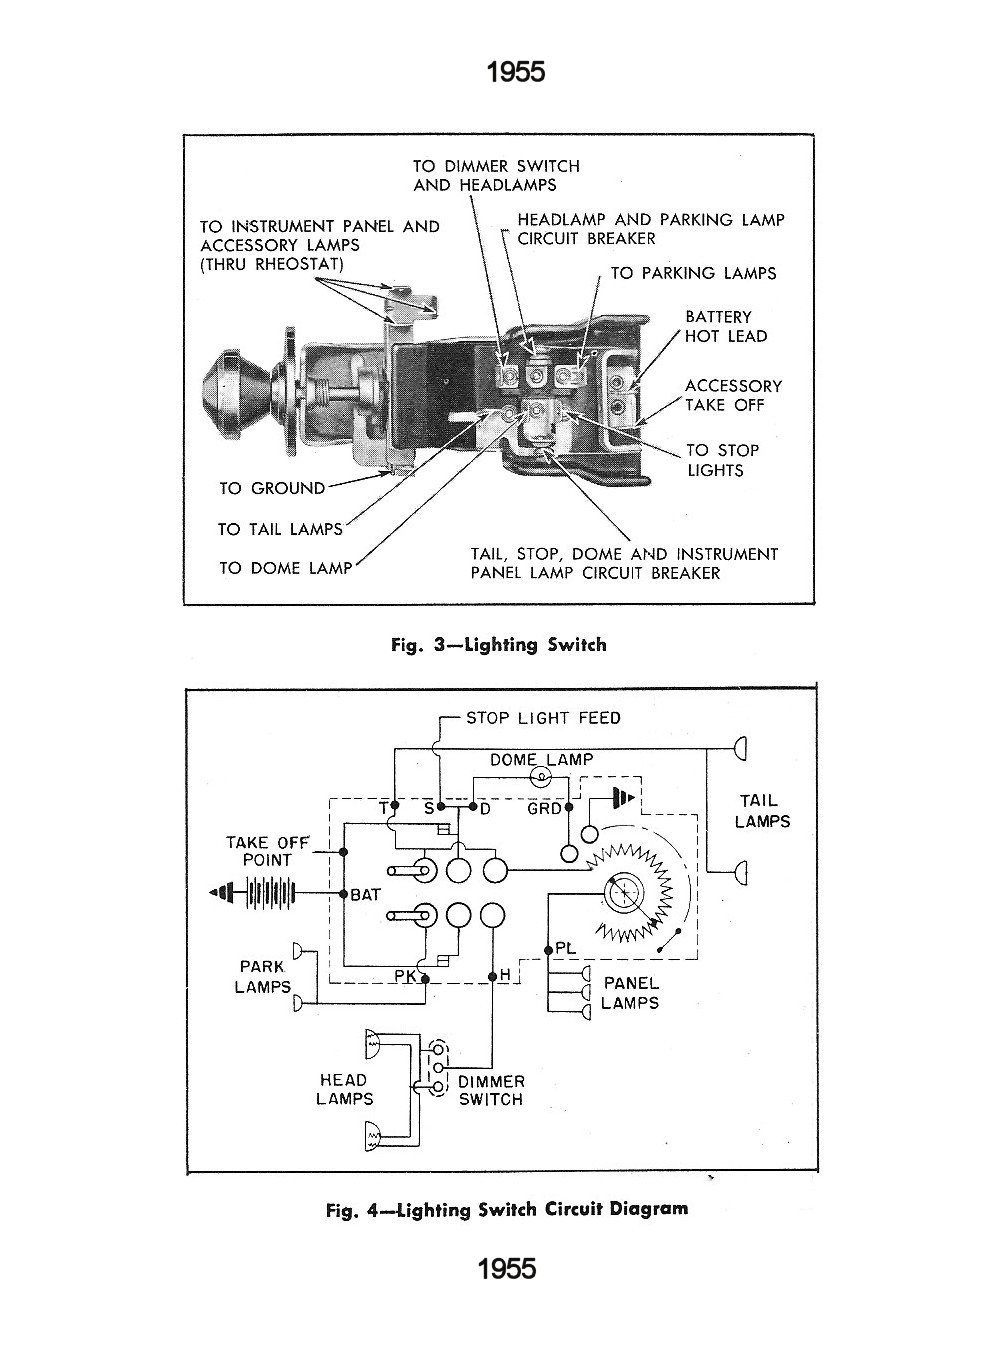 1979 gm headlight switch wiring data wiring diagram today Dimmer Switch Wiring Diagram 55 Chevy 1979 gm headlight switch wiring wiring diagram 66 corvette headlight switch wiring 1979 gm headlight switch